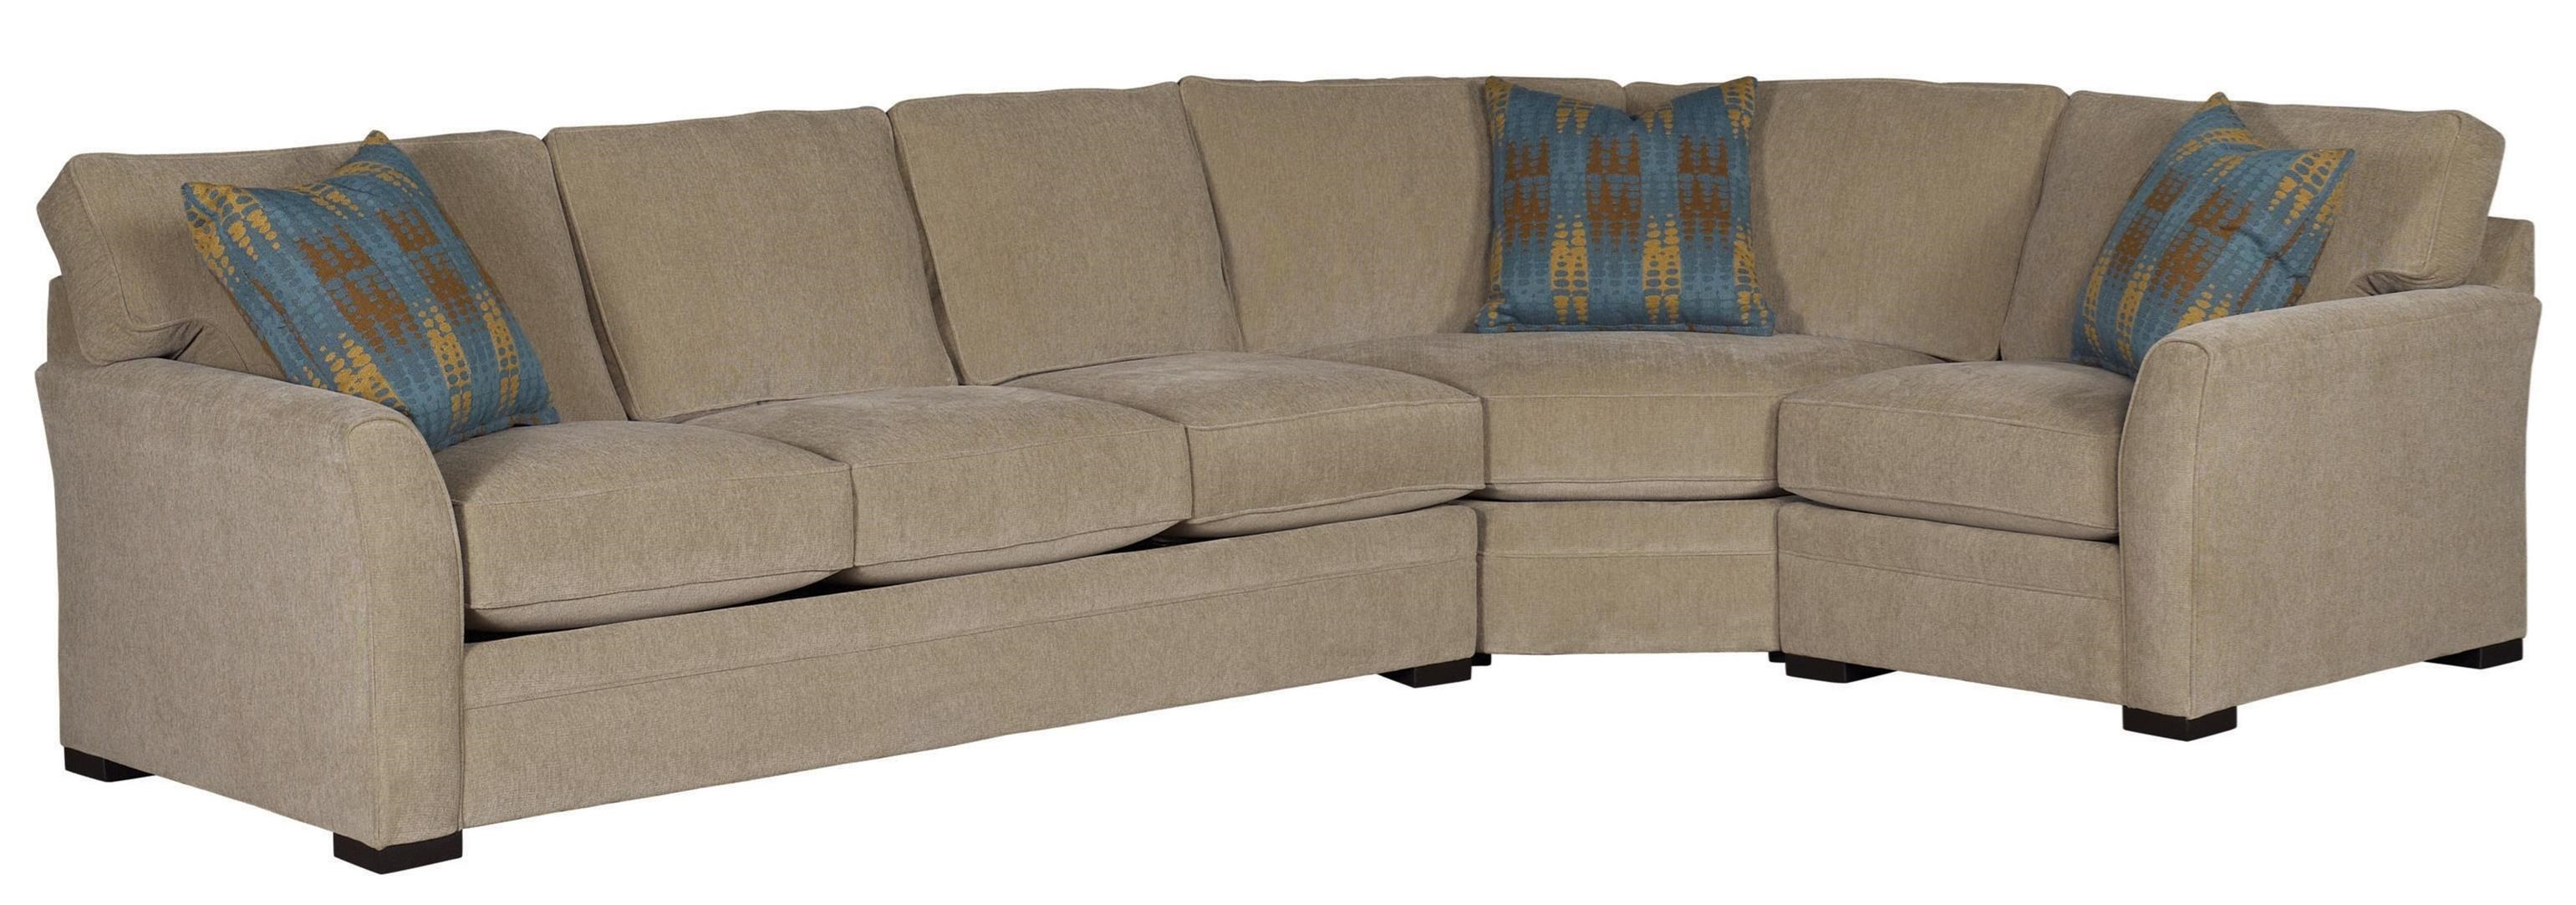 Jonathan Louis Scorpio Casual Sectional Sofa With Flared Arms Bennett 39 S Home Furnishings